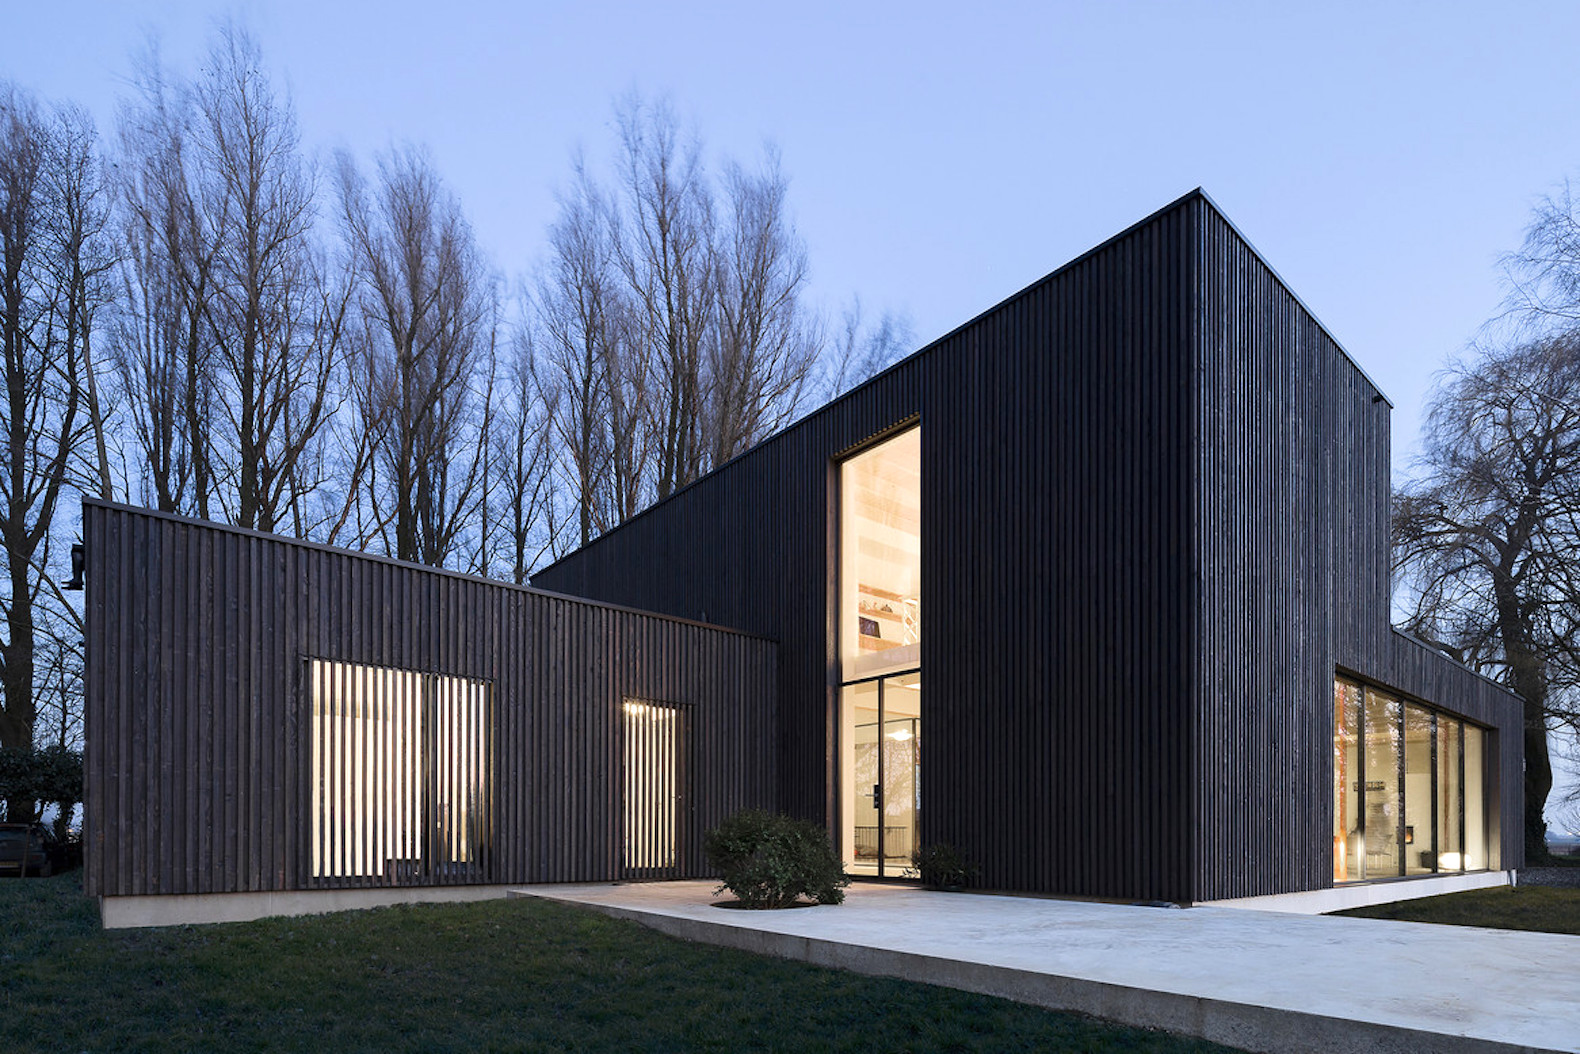 Burned-down house is resurrected as an energy-efficient prefab dwelling